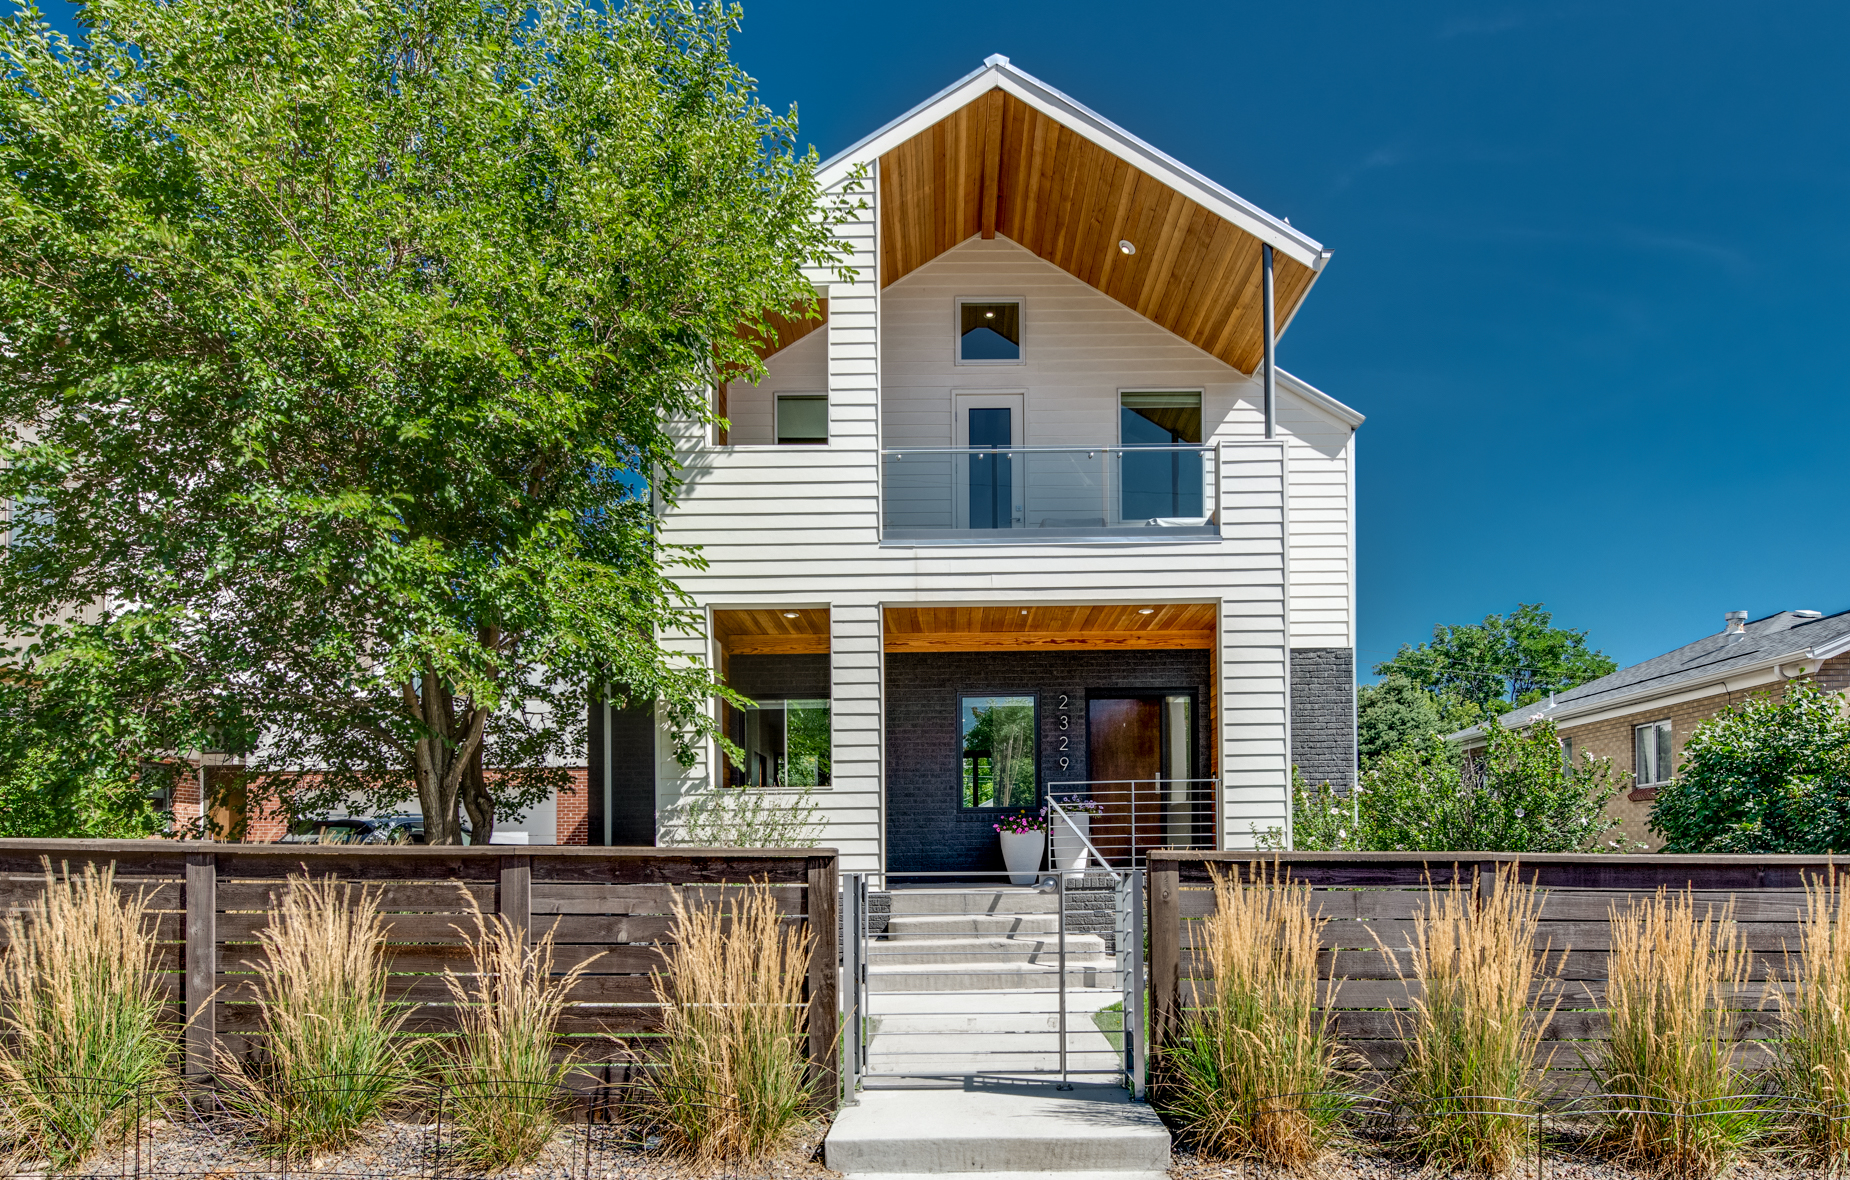 Single Family Home for Active at 2329 West 32nd Avenue 2329 W 32nd Ave Denver, Colorado 80211 United States